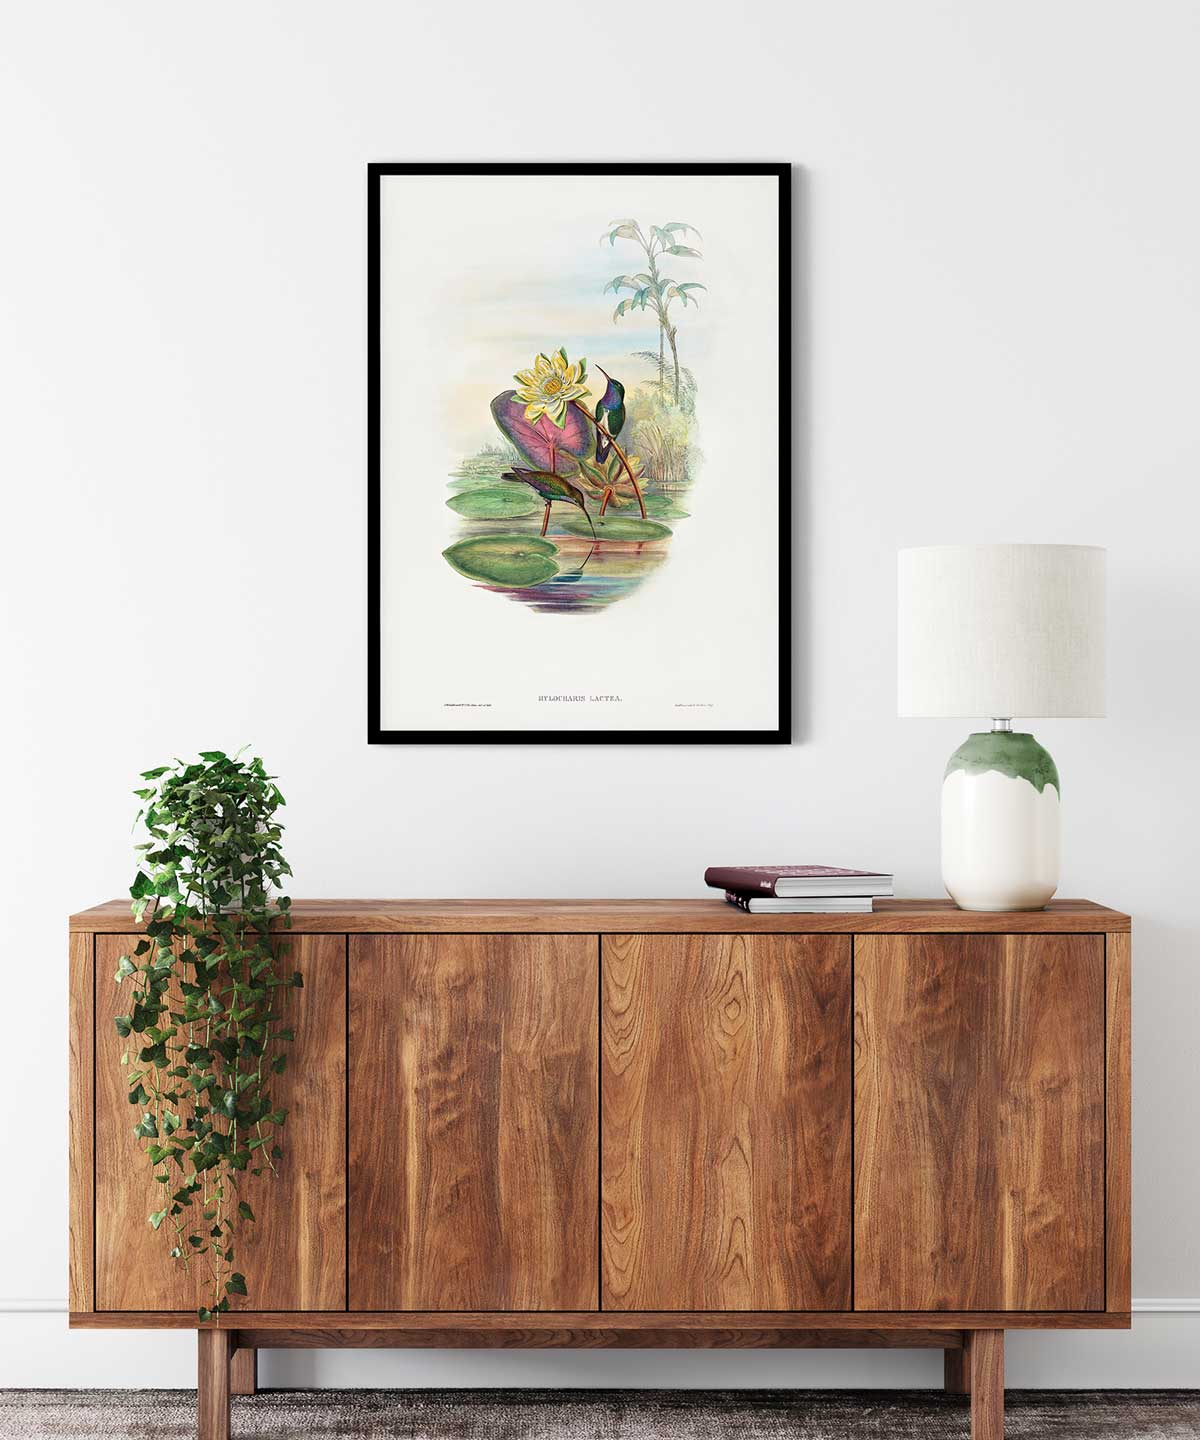 Blue-Breasted-Sapphire-Poster-Black-Framed-on-Wall-Duwart